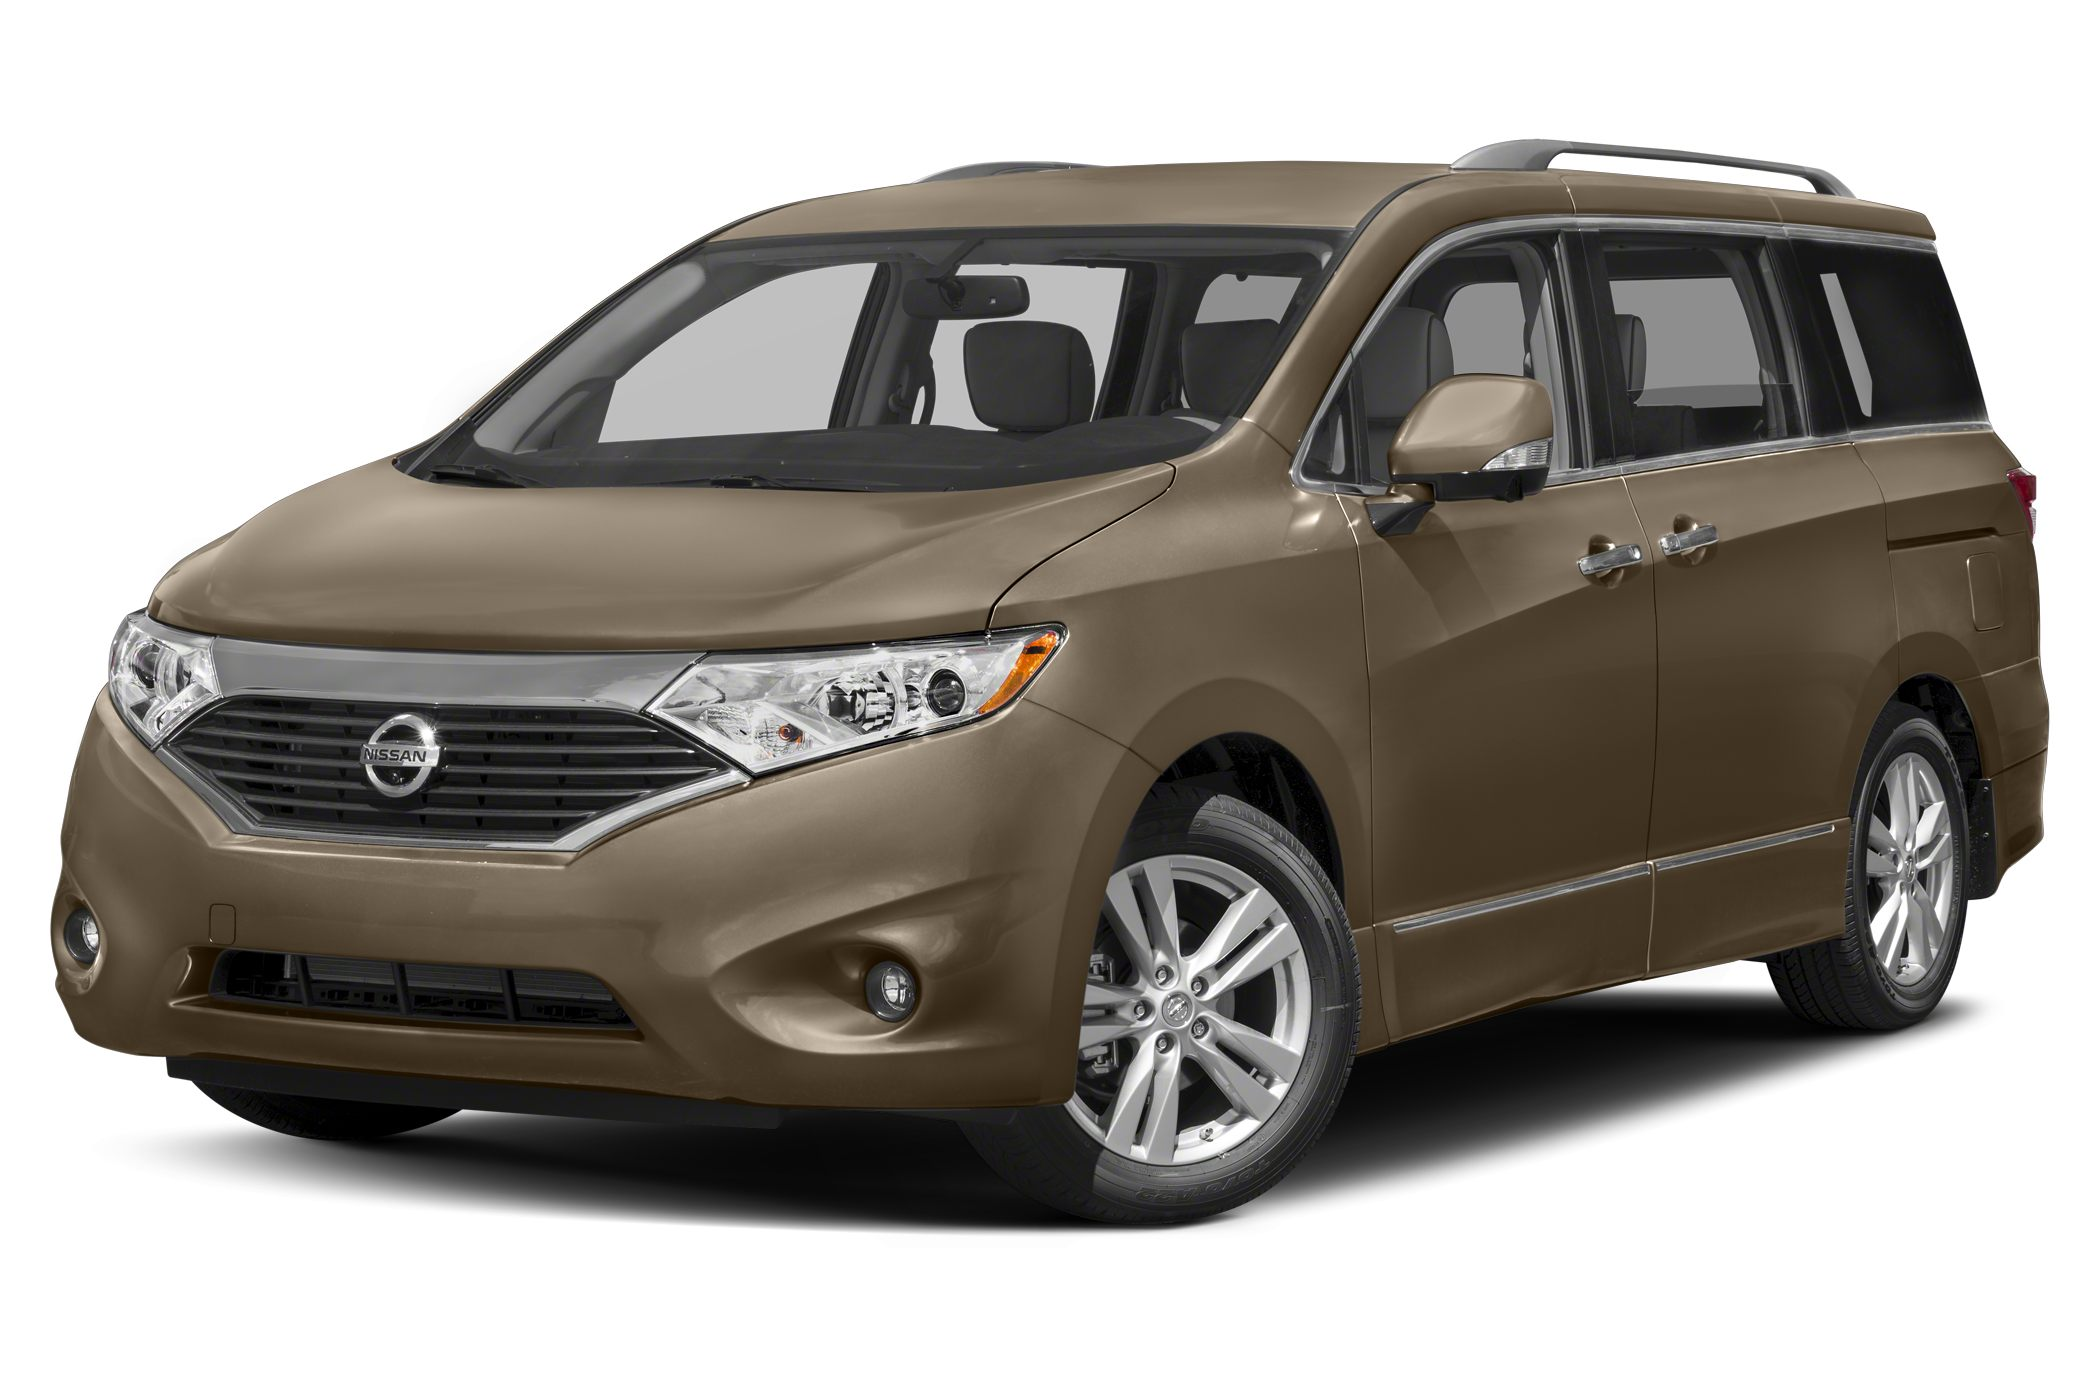 Toyota Sienna News, Photos and Buying Information - Autoblog